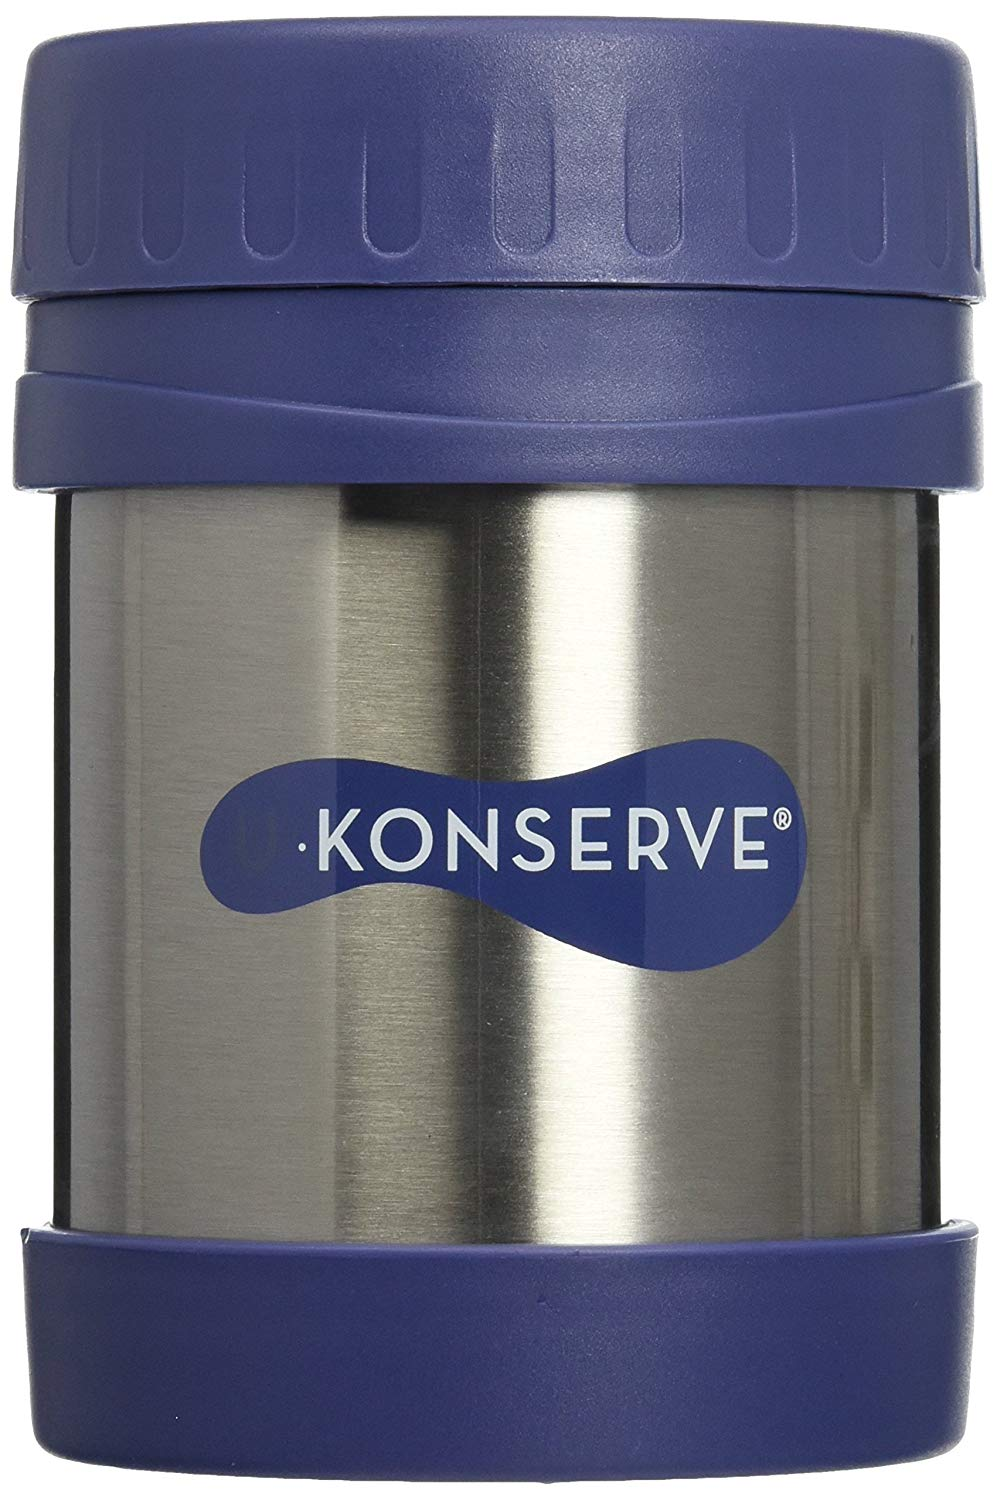 12 oz. Blue & Stainless Steel Insulated Jar